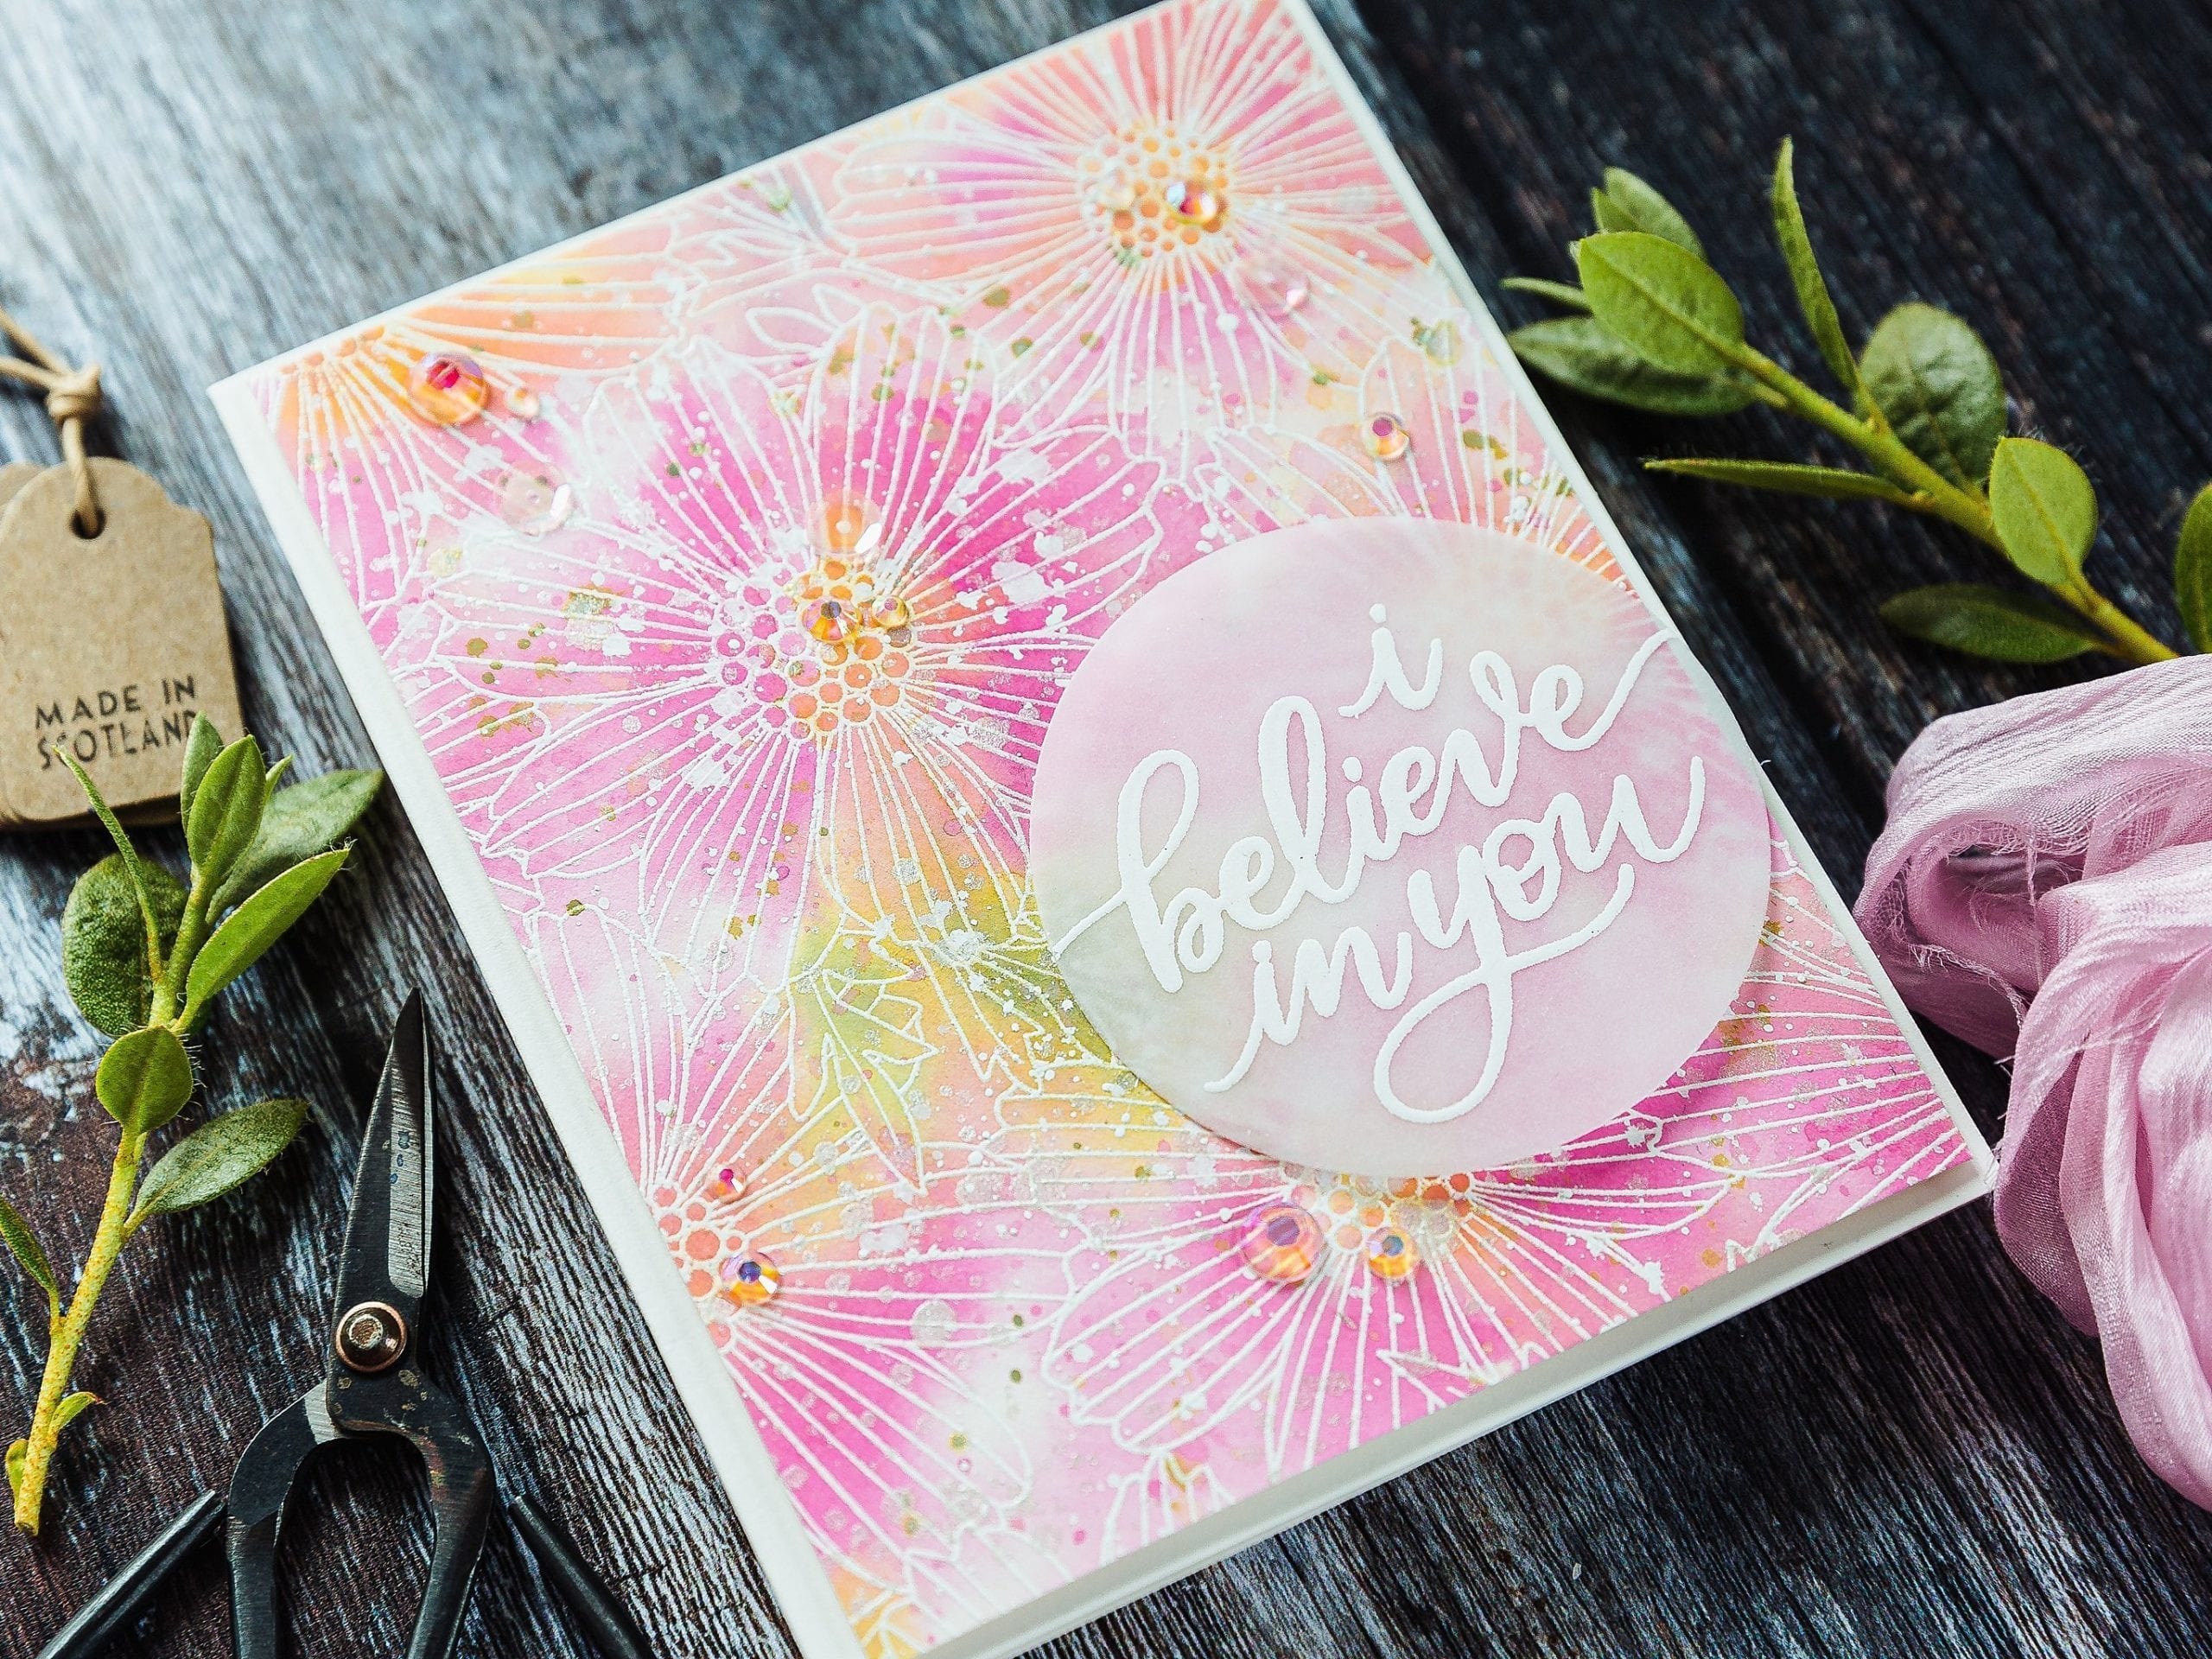 Simple watercoloured look using Distress Oxide sprays - handmade floral vellum encouragement card by Debby Hughes using supplies from Simon Says Stamp. Find out more here: https://limedoodledesign.com/2019/07/distress-oxide-spray-watercolour-background/